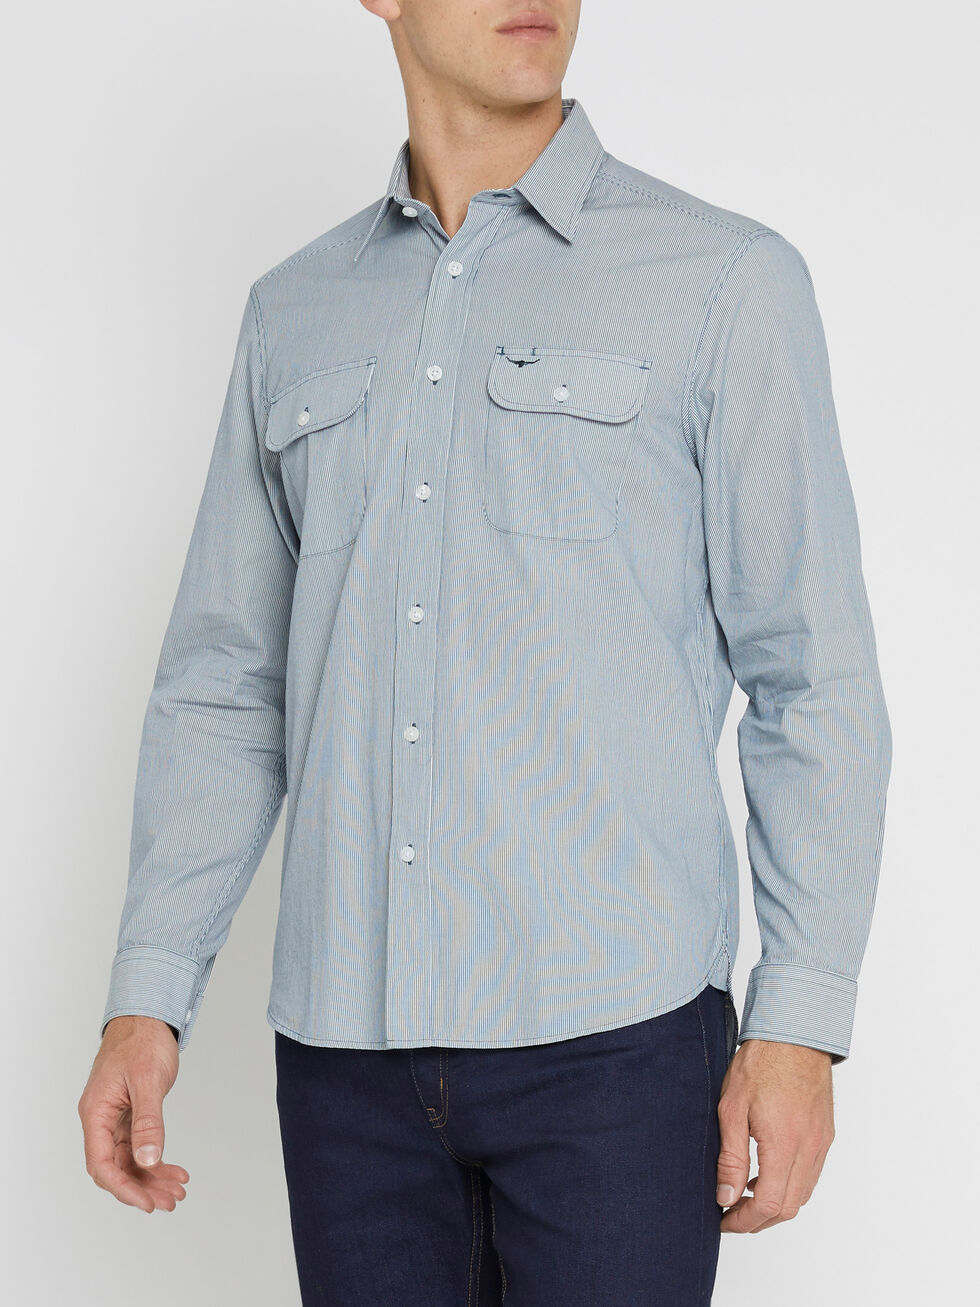 RM Williams Bourke Shirt , from Harley & Rose